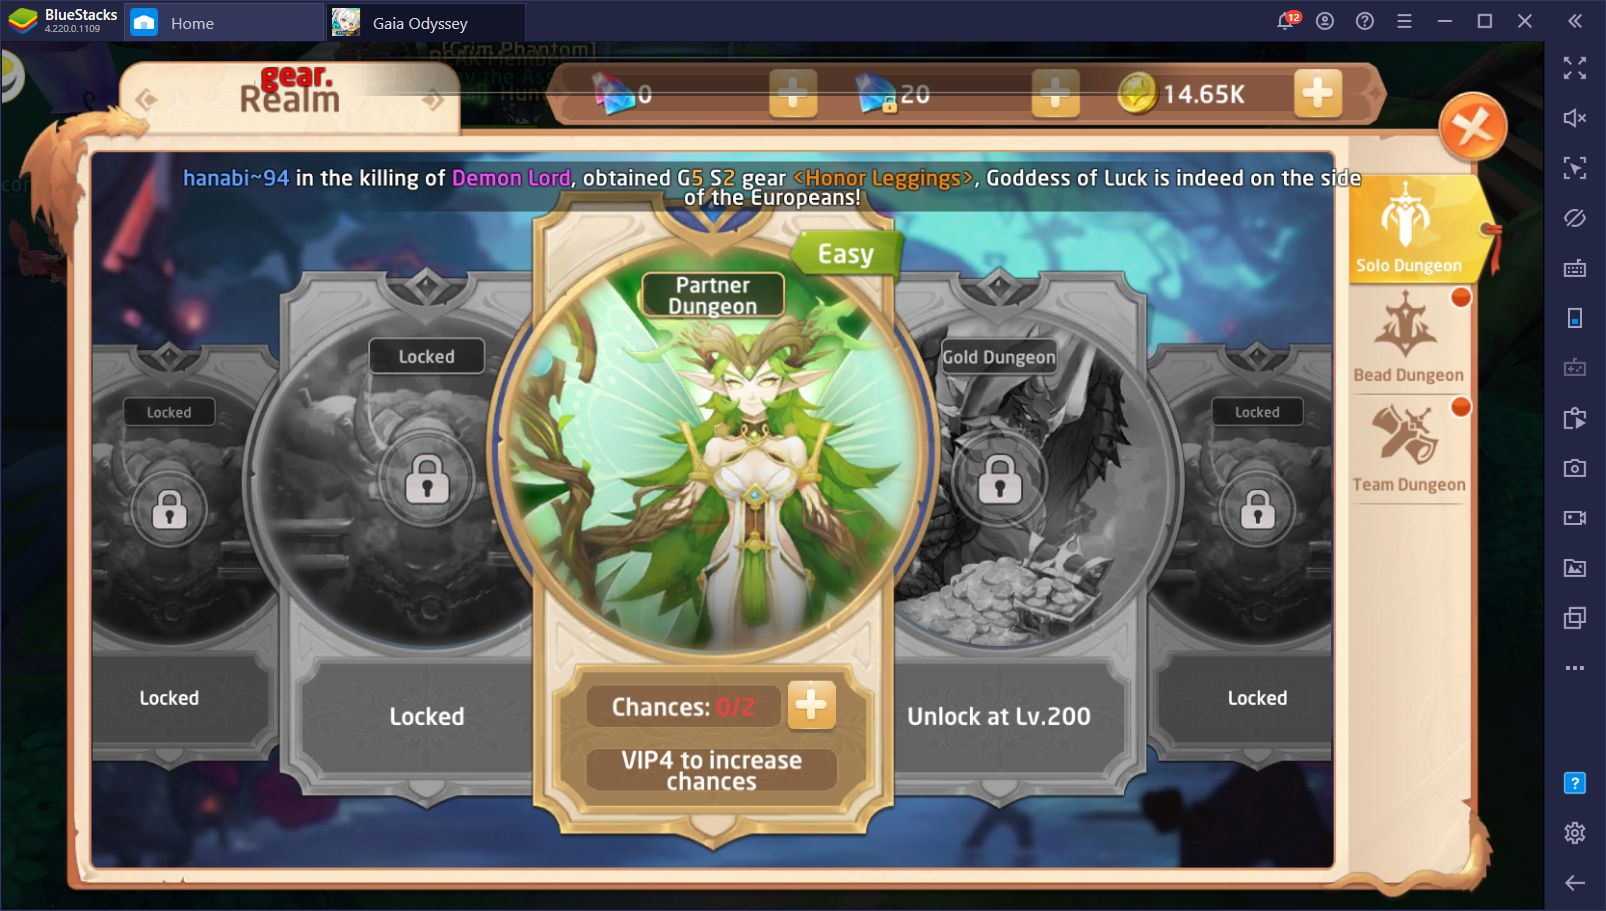 Gaia Odyssey on PC – How to Play EYOUGAME's Latest MMORPG